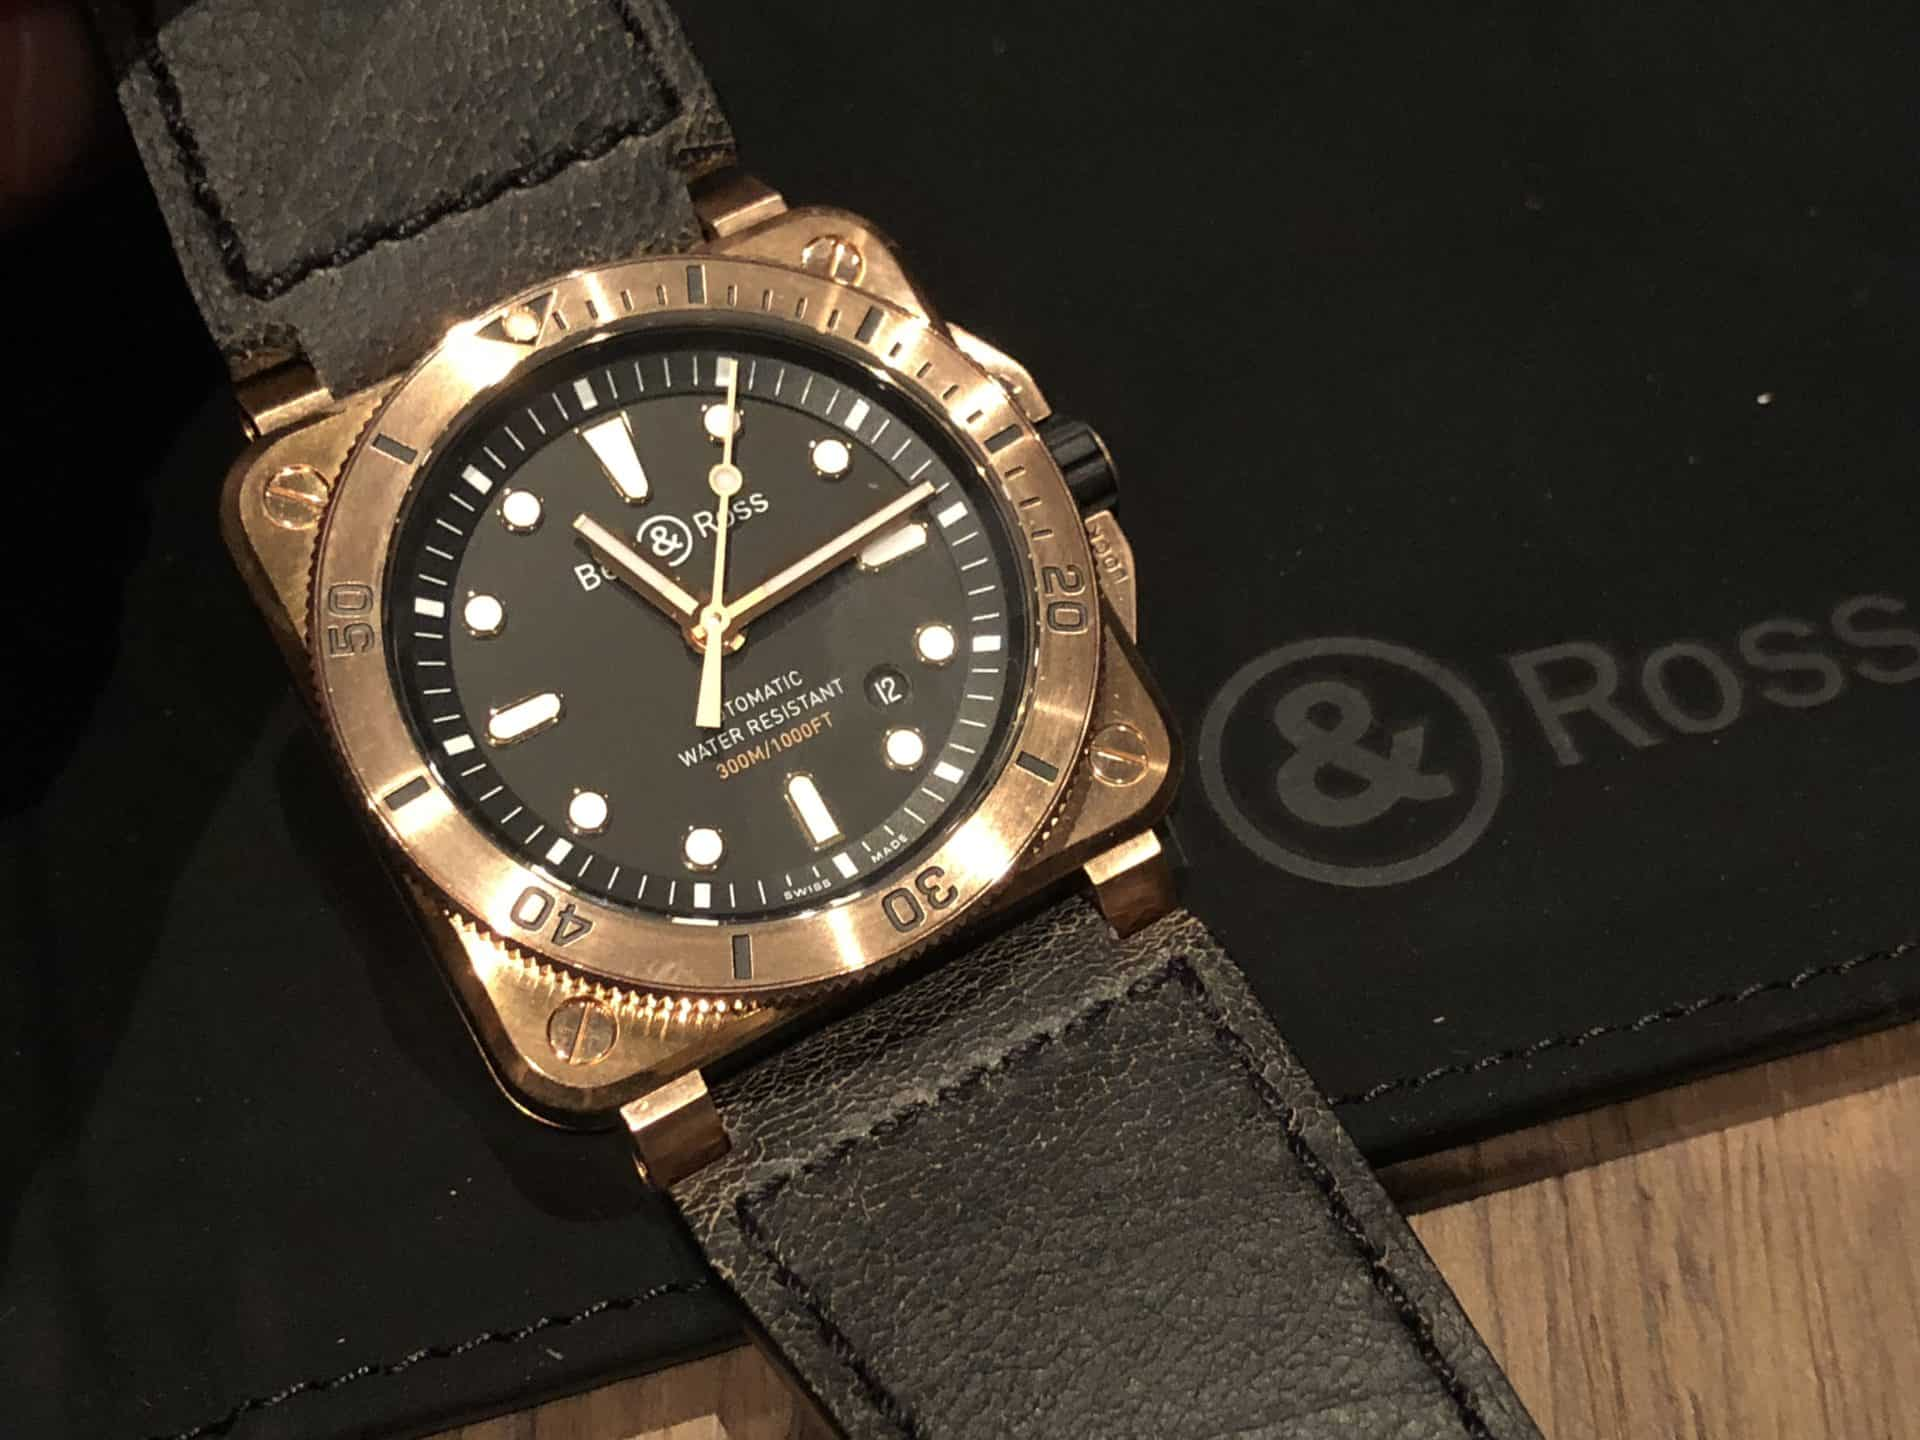 Bell&Ross_Diver_Bronze_Limited_Edition_2018_03_Foto_GLB